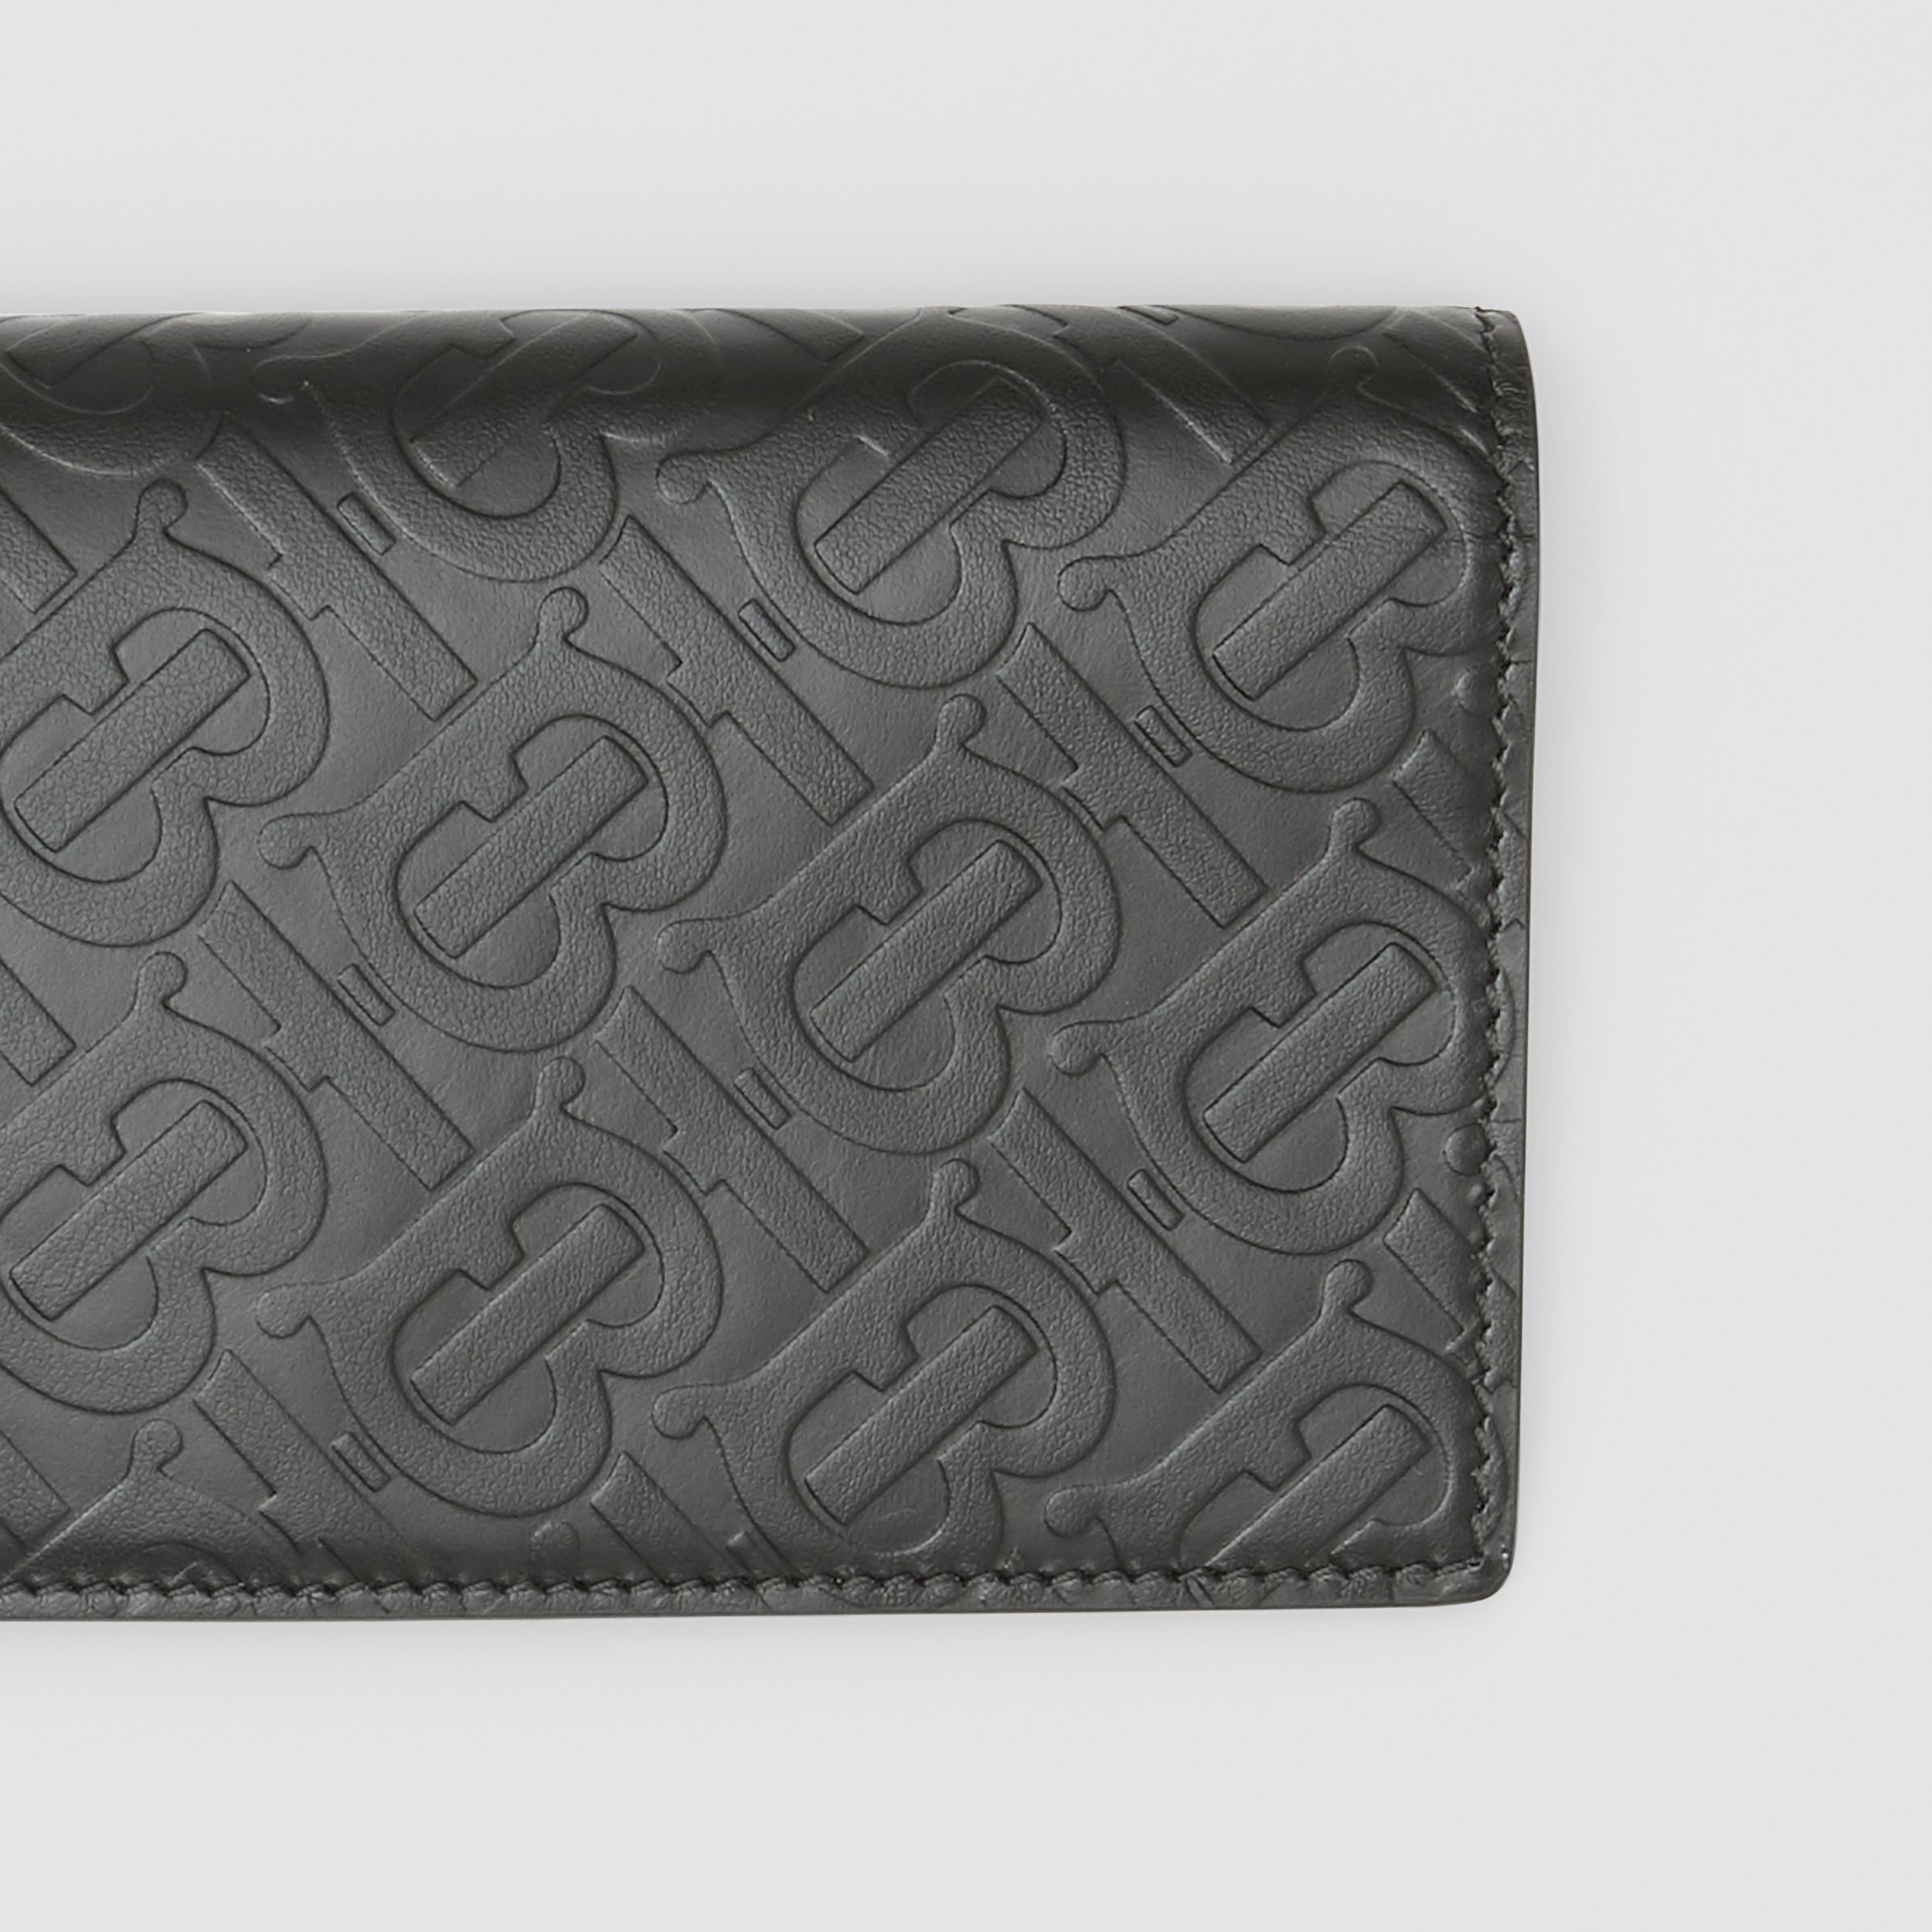 Monogram Leather Continental Wallet in Black | Burberry - 2